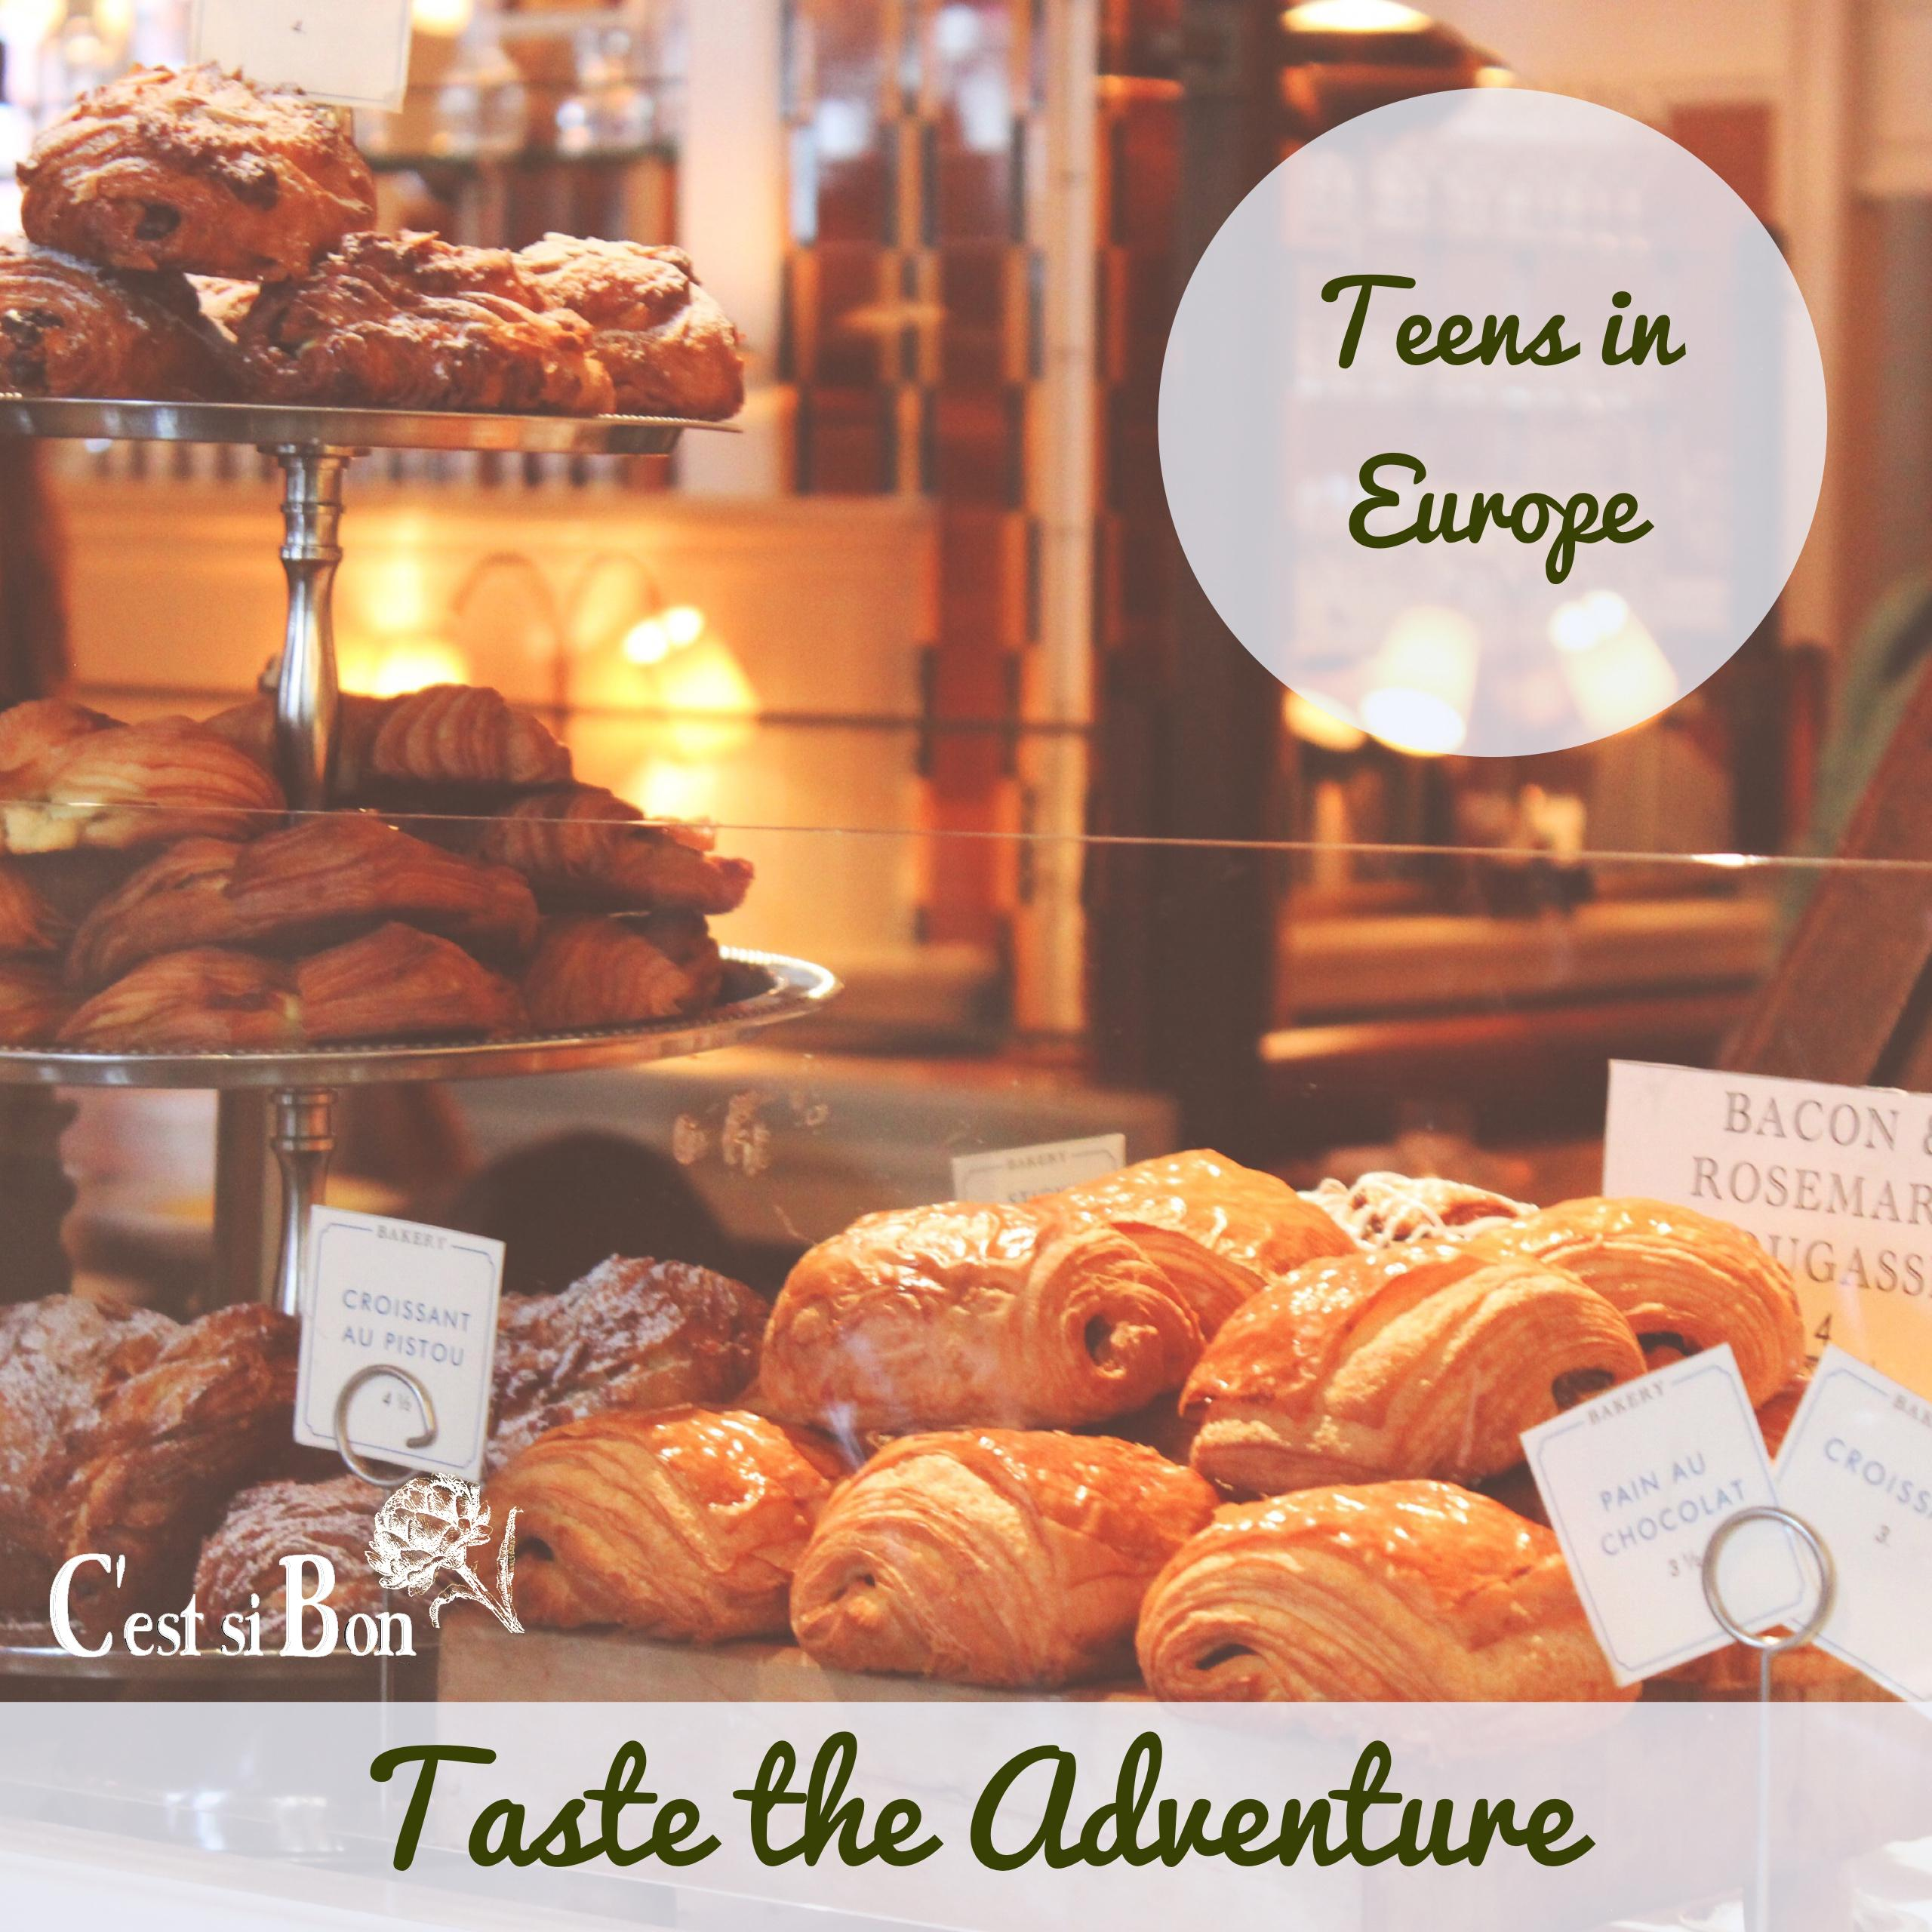 Taste the Adventure Teens in Europe